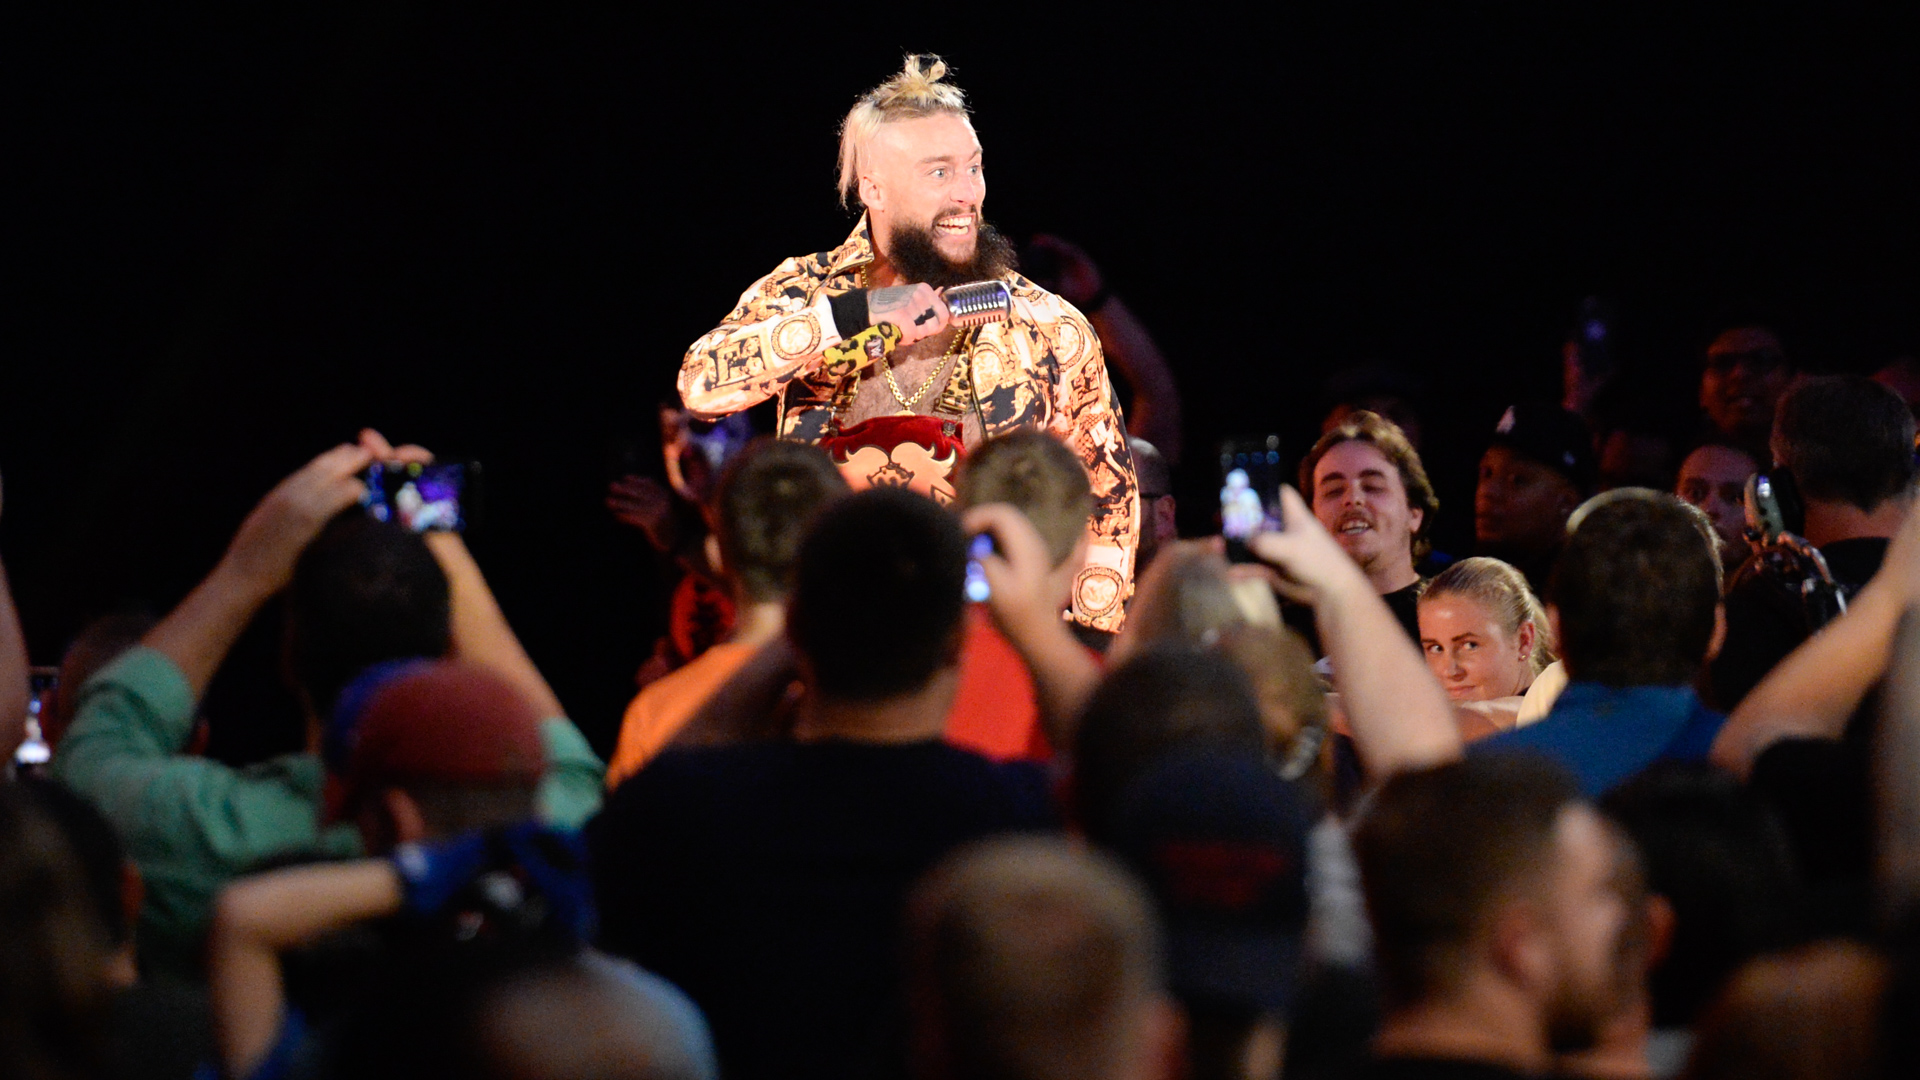 WWE Cruiserweight Champion Enzo Amore has a lot to say before defending his title in a Lumberjack Match against Kalisto.